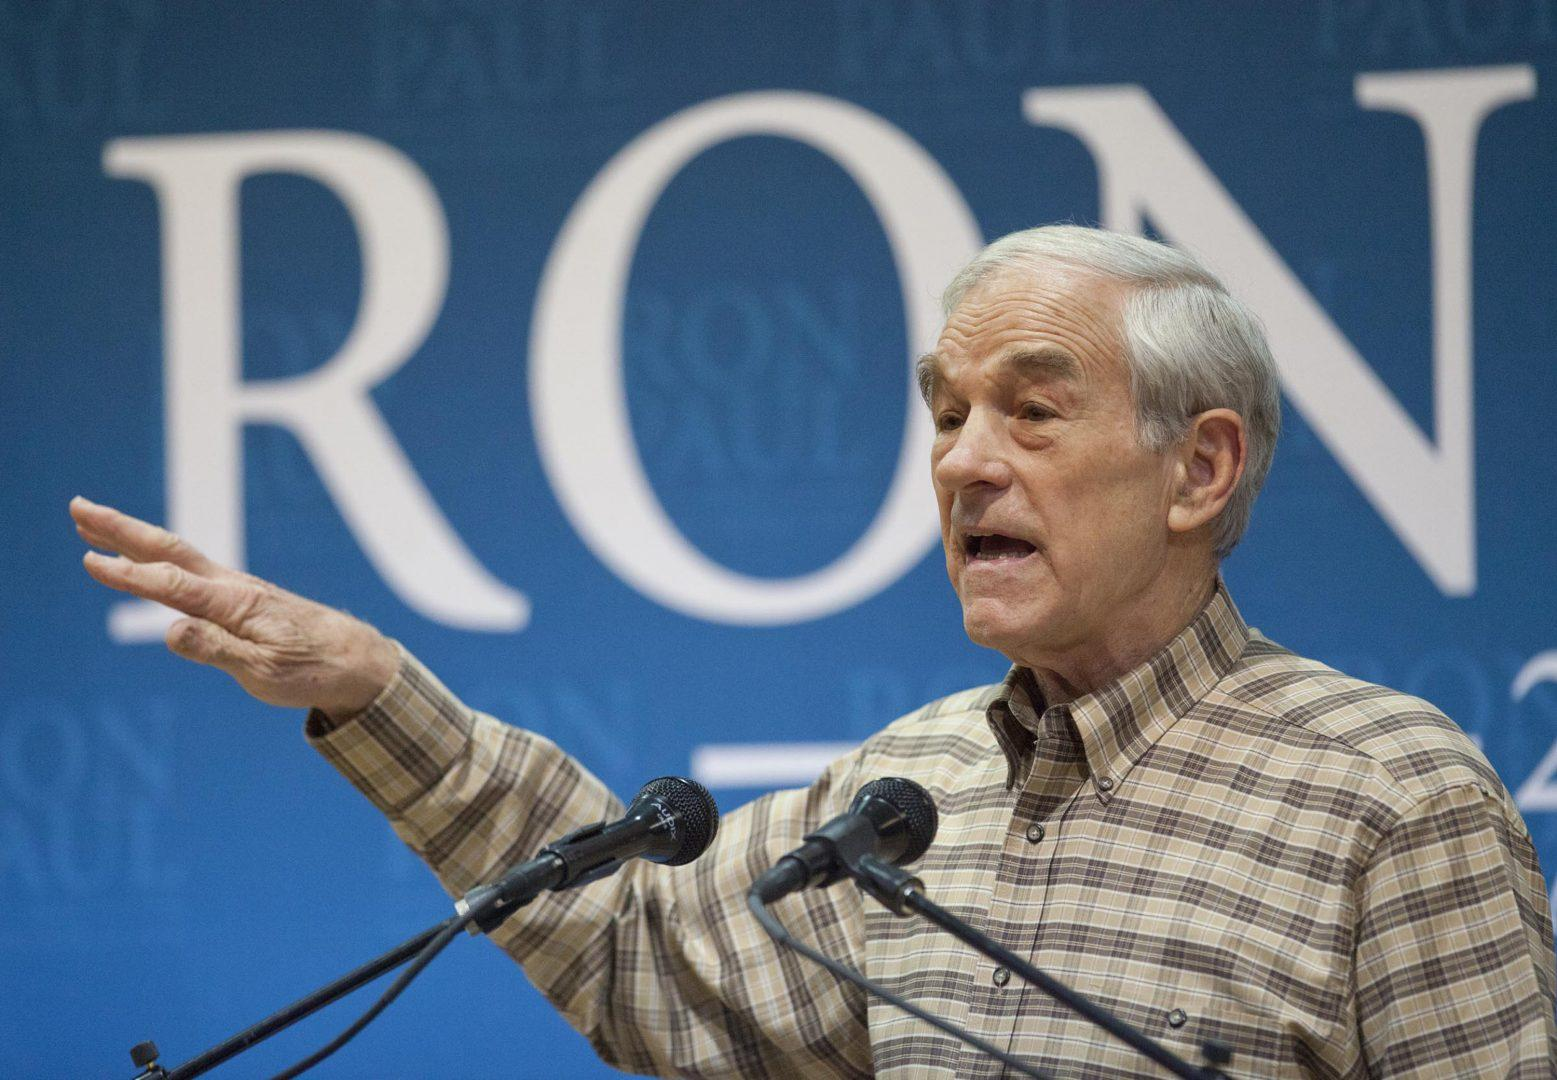 At a rally in Boise, Idaho, Ron Paul easily wins over the crowd with his speech, but voters need to examine his questionable future goals as well. (Darin Oswald/Idaho State/MCT)